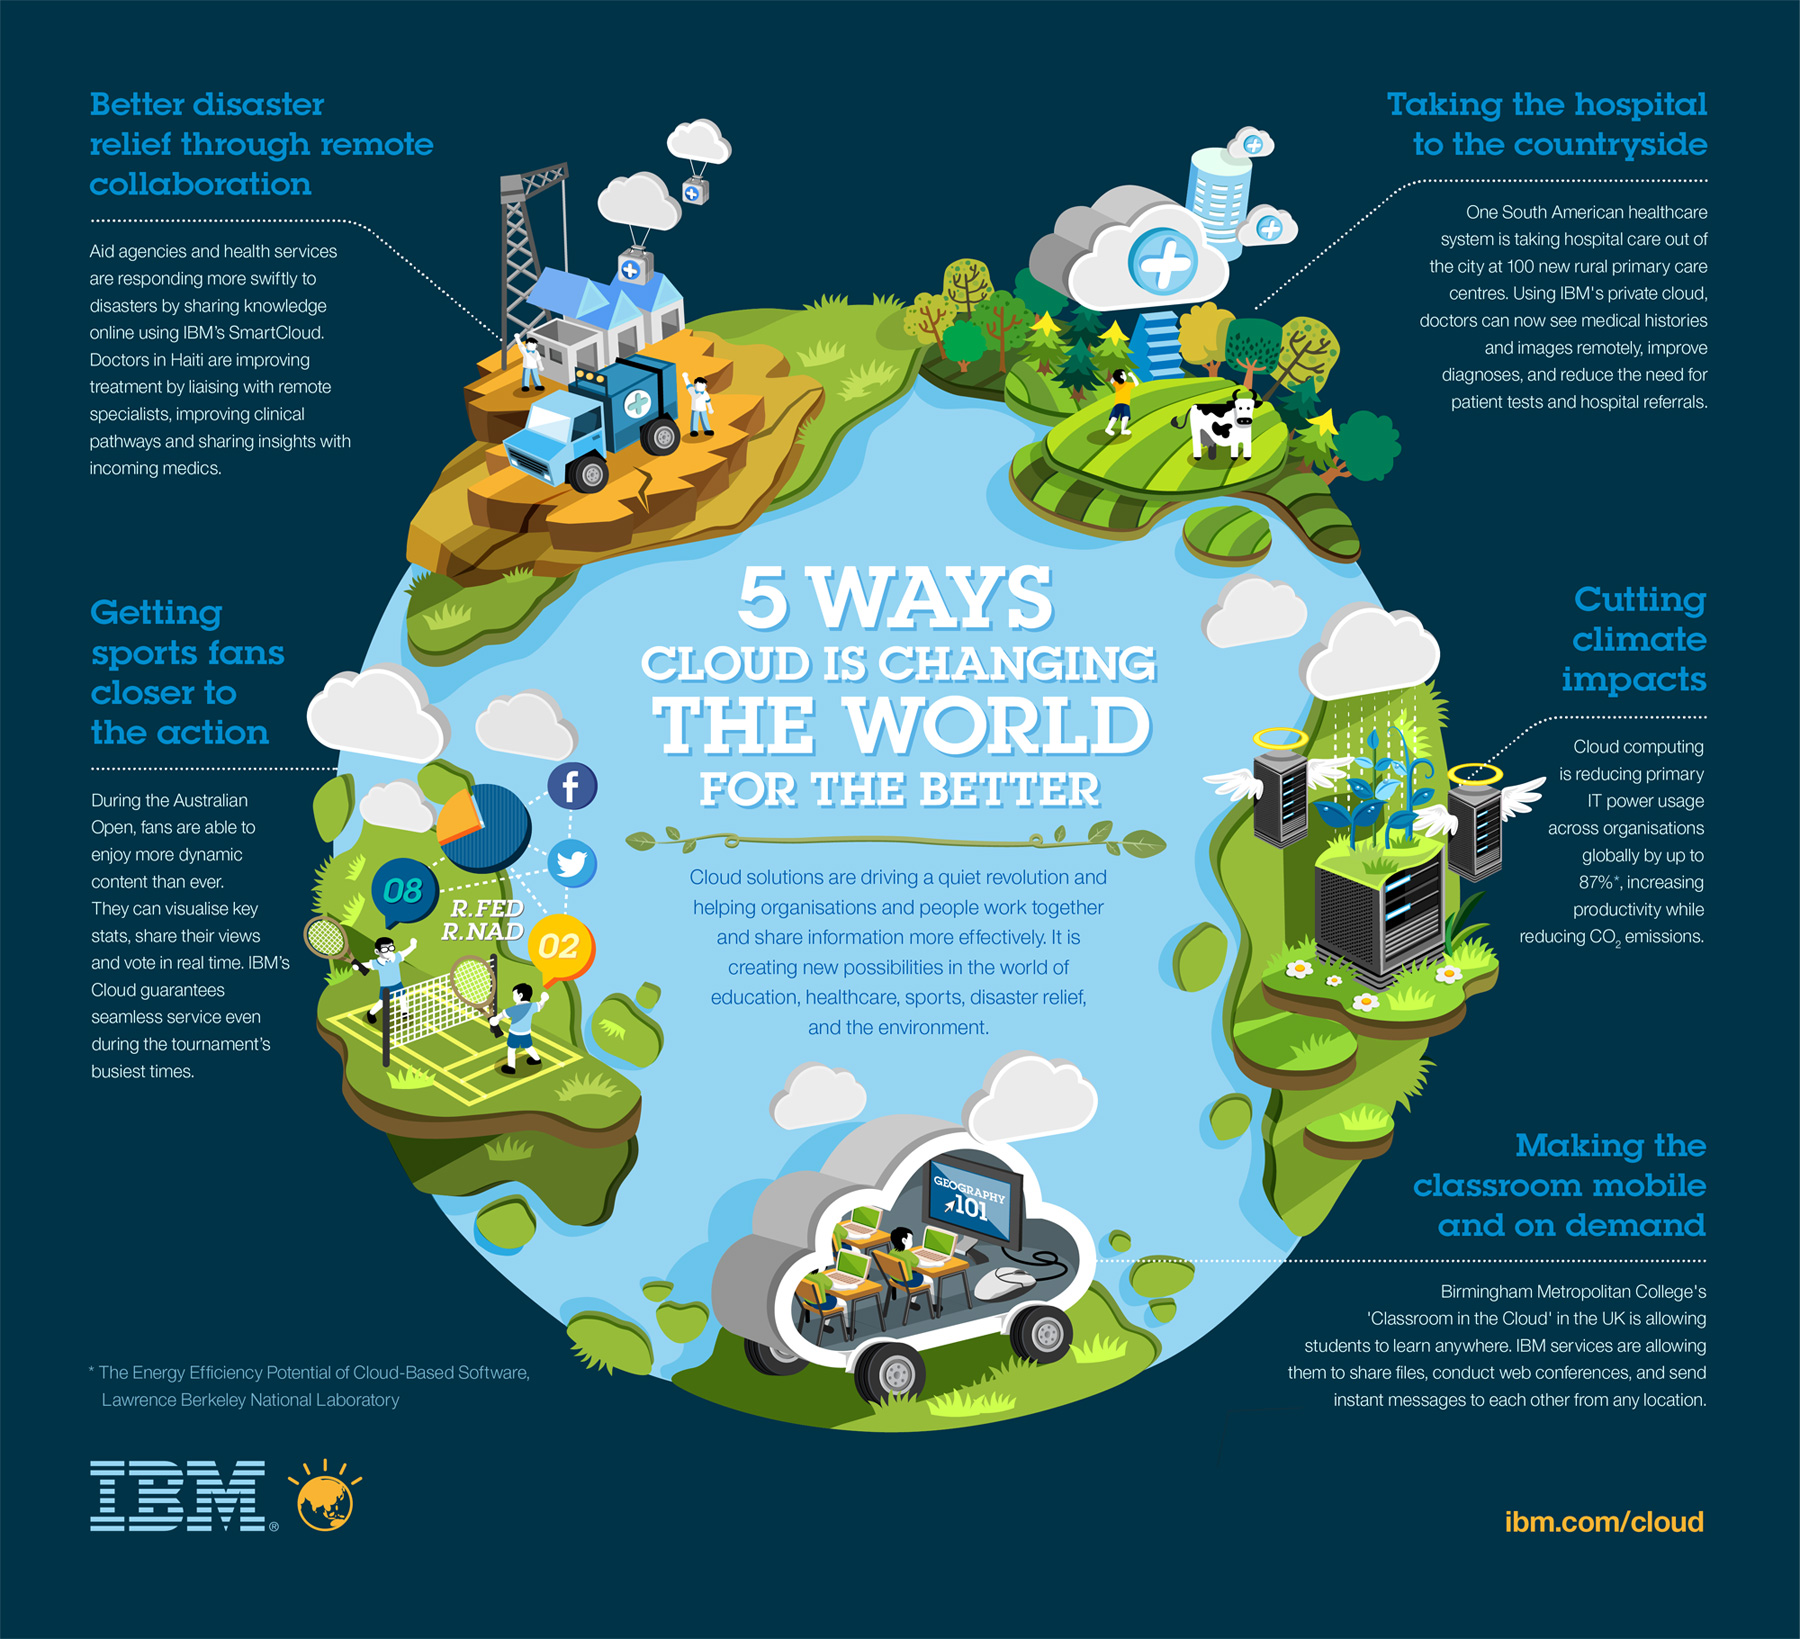 IBM partners with US based Majesco to provide insurance services